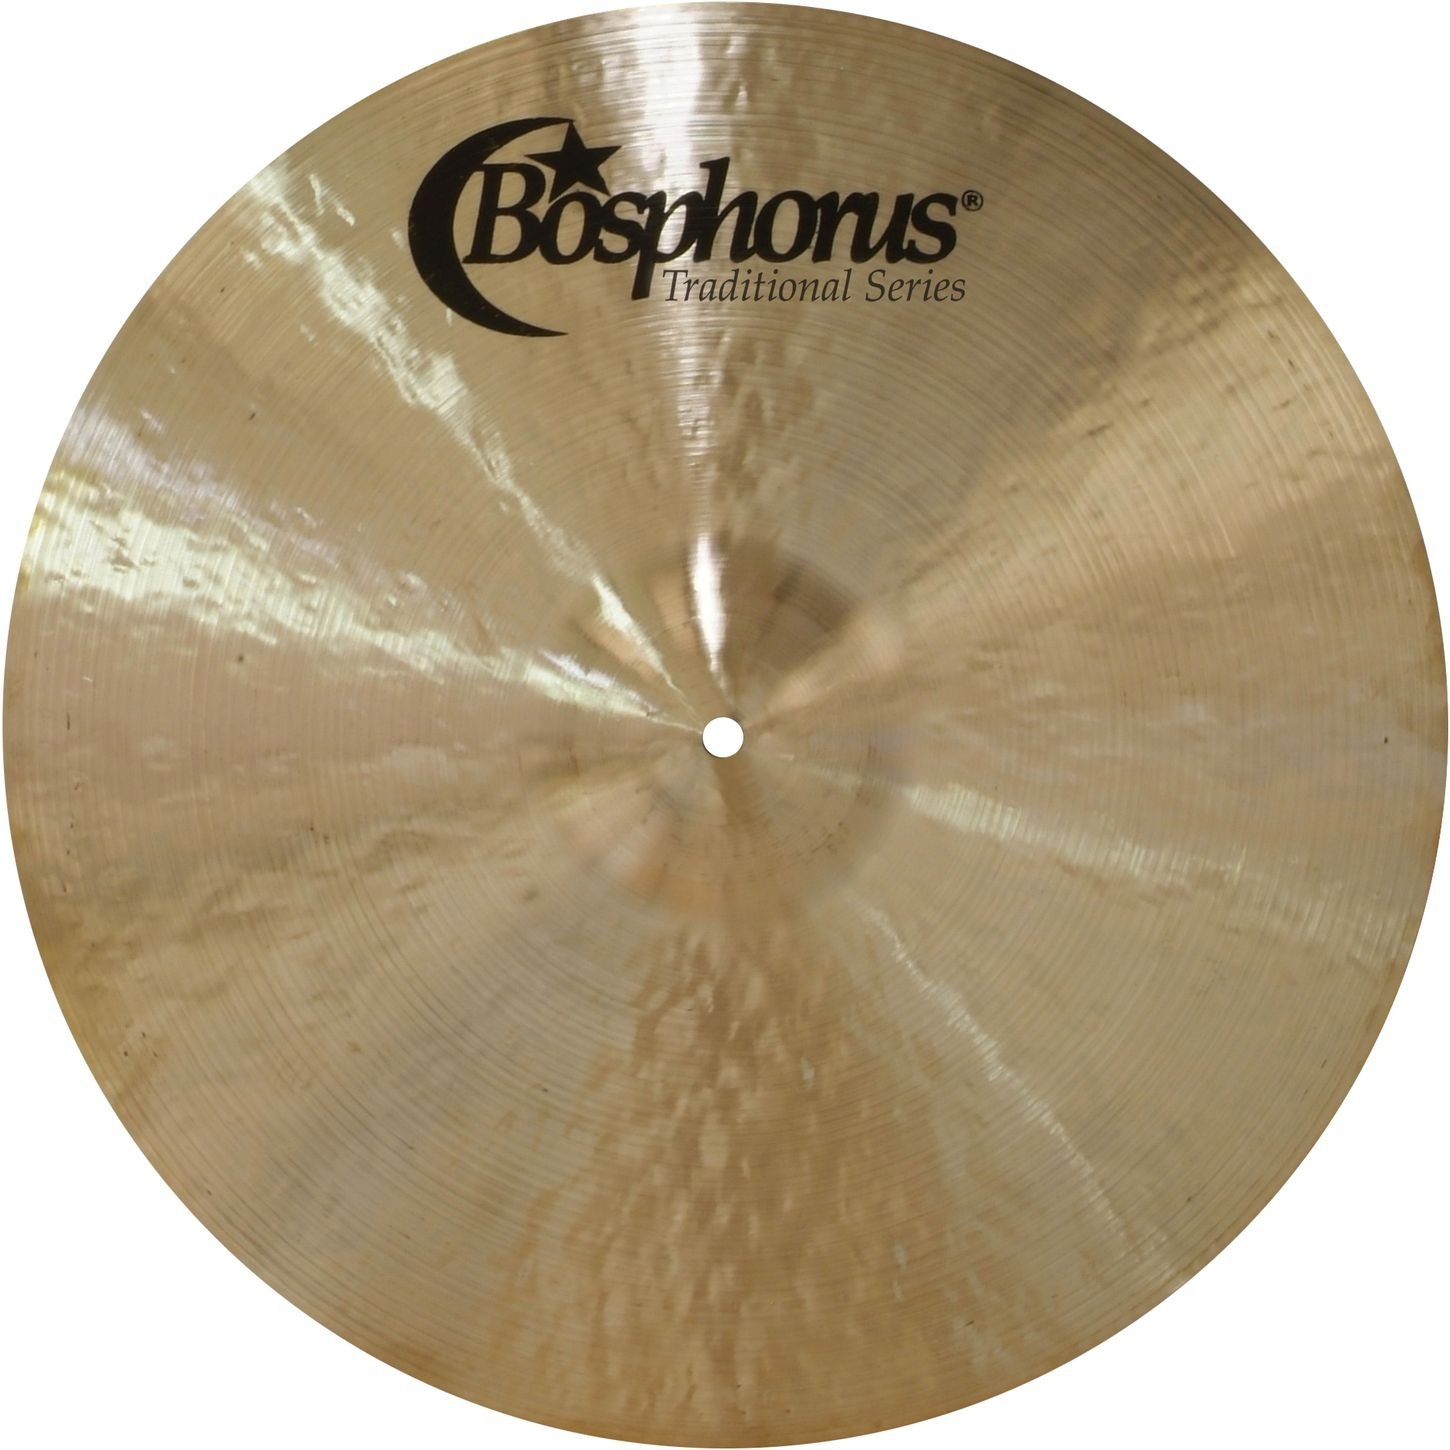 Bosphorus Cymbals T20RT 20-Inch Traditional Series Ride Cymbal by Bosphorus Cymbals